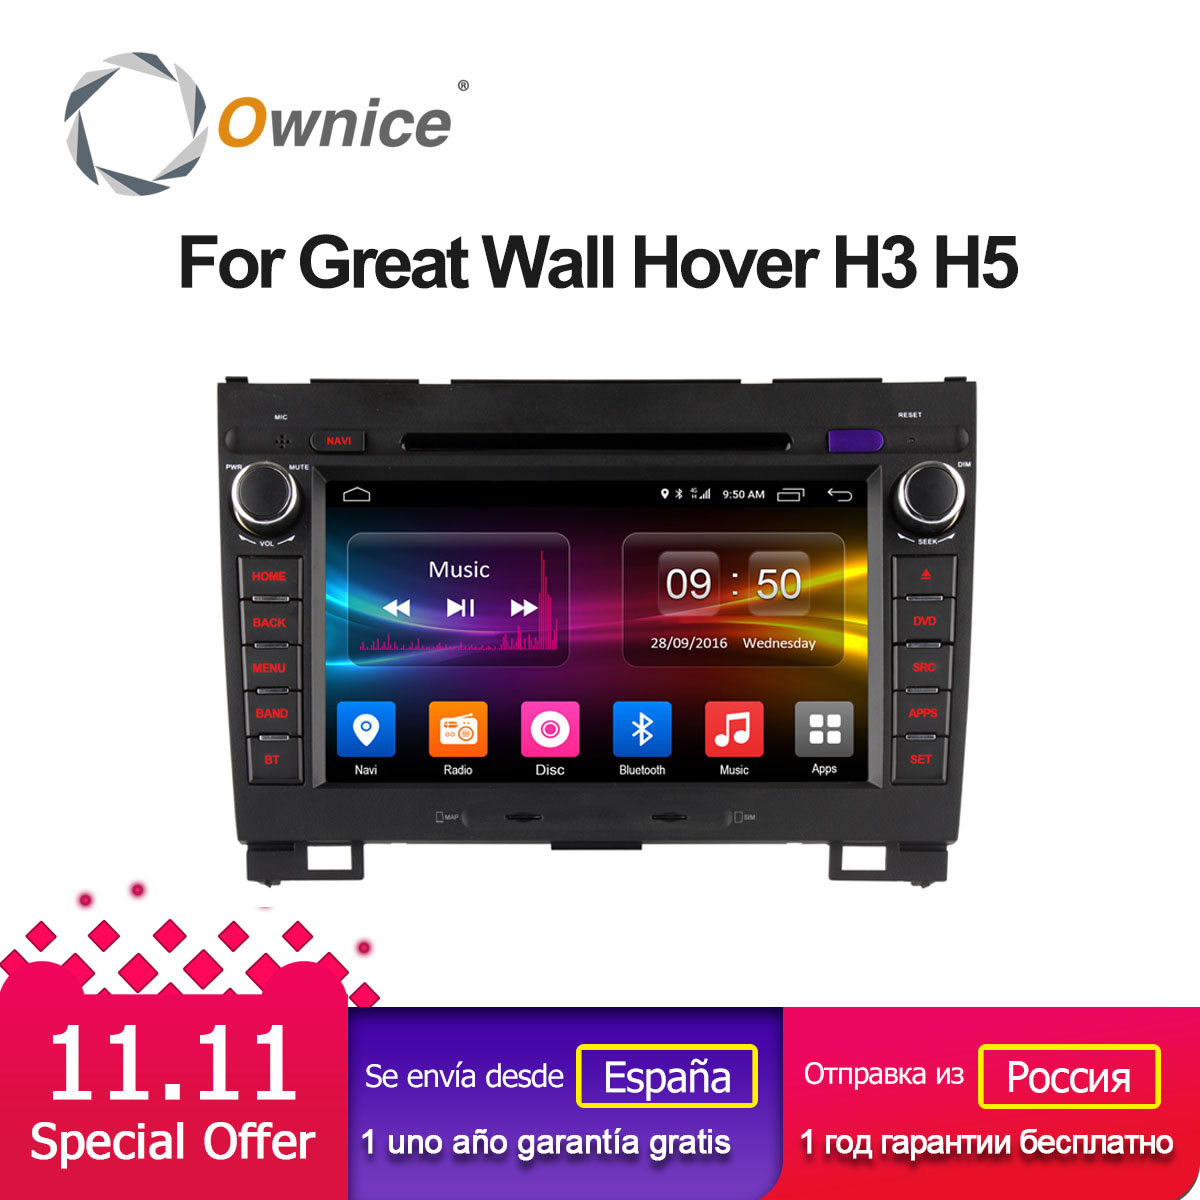 Ownice C500 Android 6.0 Octa 8 Core CAR DVD PLAYER GPS Navi For Great Wall Hover H3 H5 wifi 4G radio 2GB RAM 32GB ROM 4G LTE funrover 9 2 din android 8 0 car radio multimedia dvd player gps for great wall haval h3 h5 2010 2013 glonass wifi fm quad core